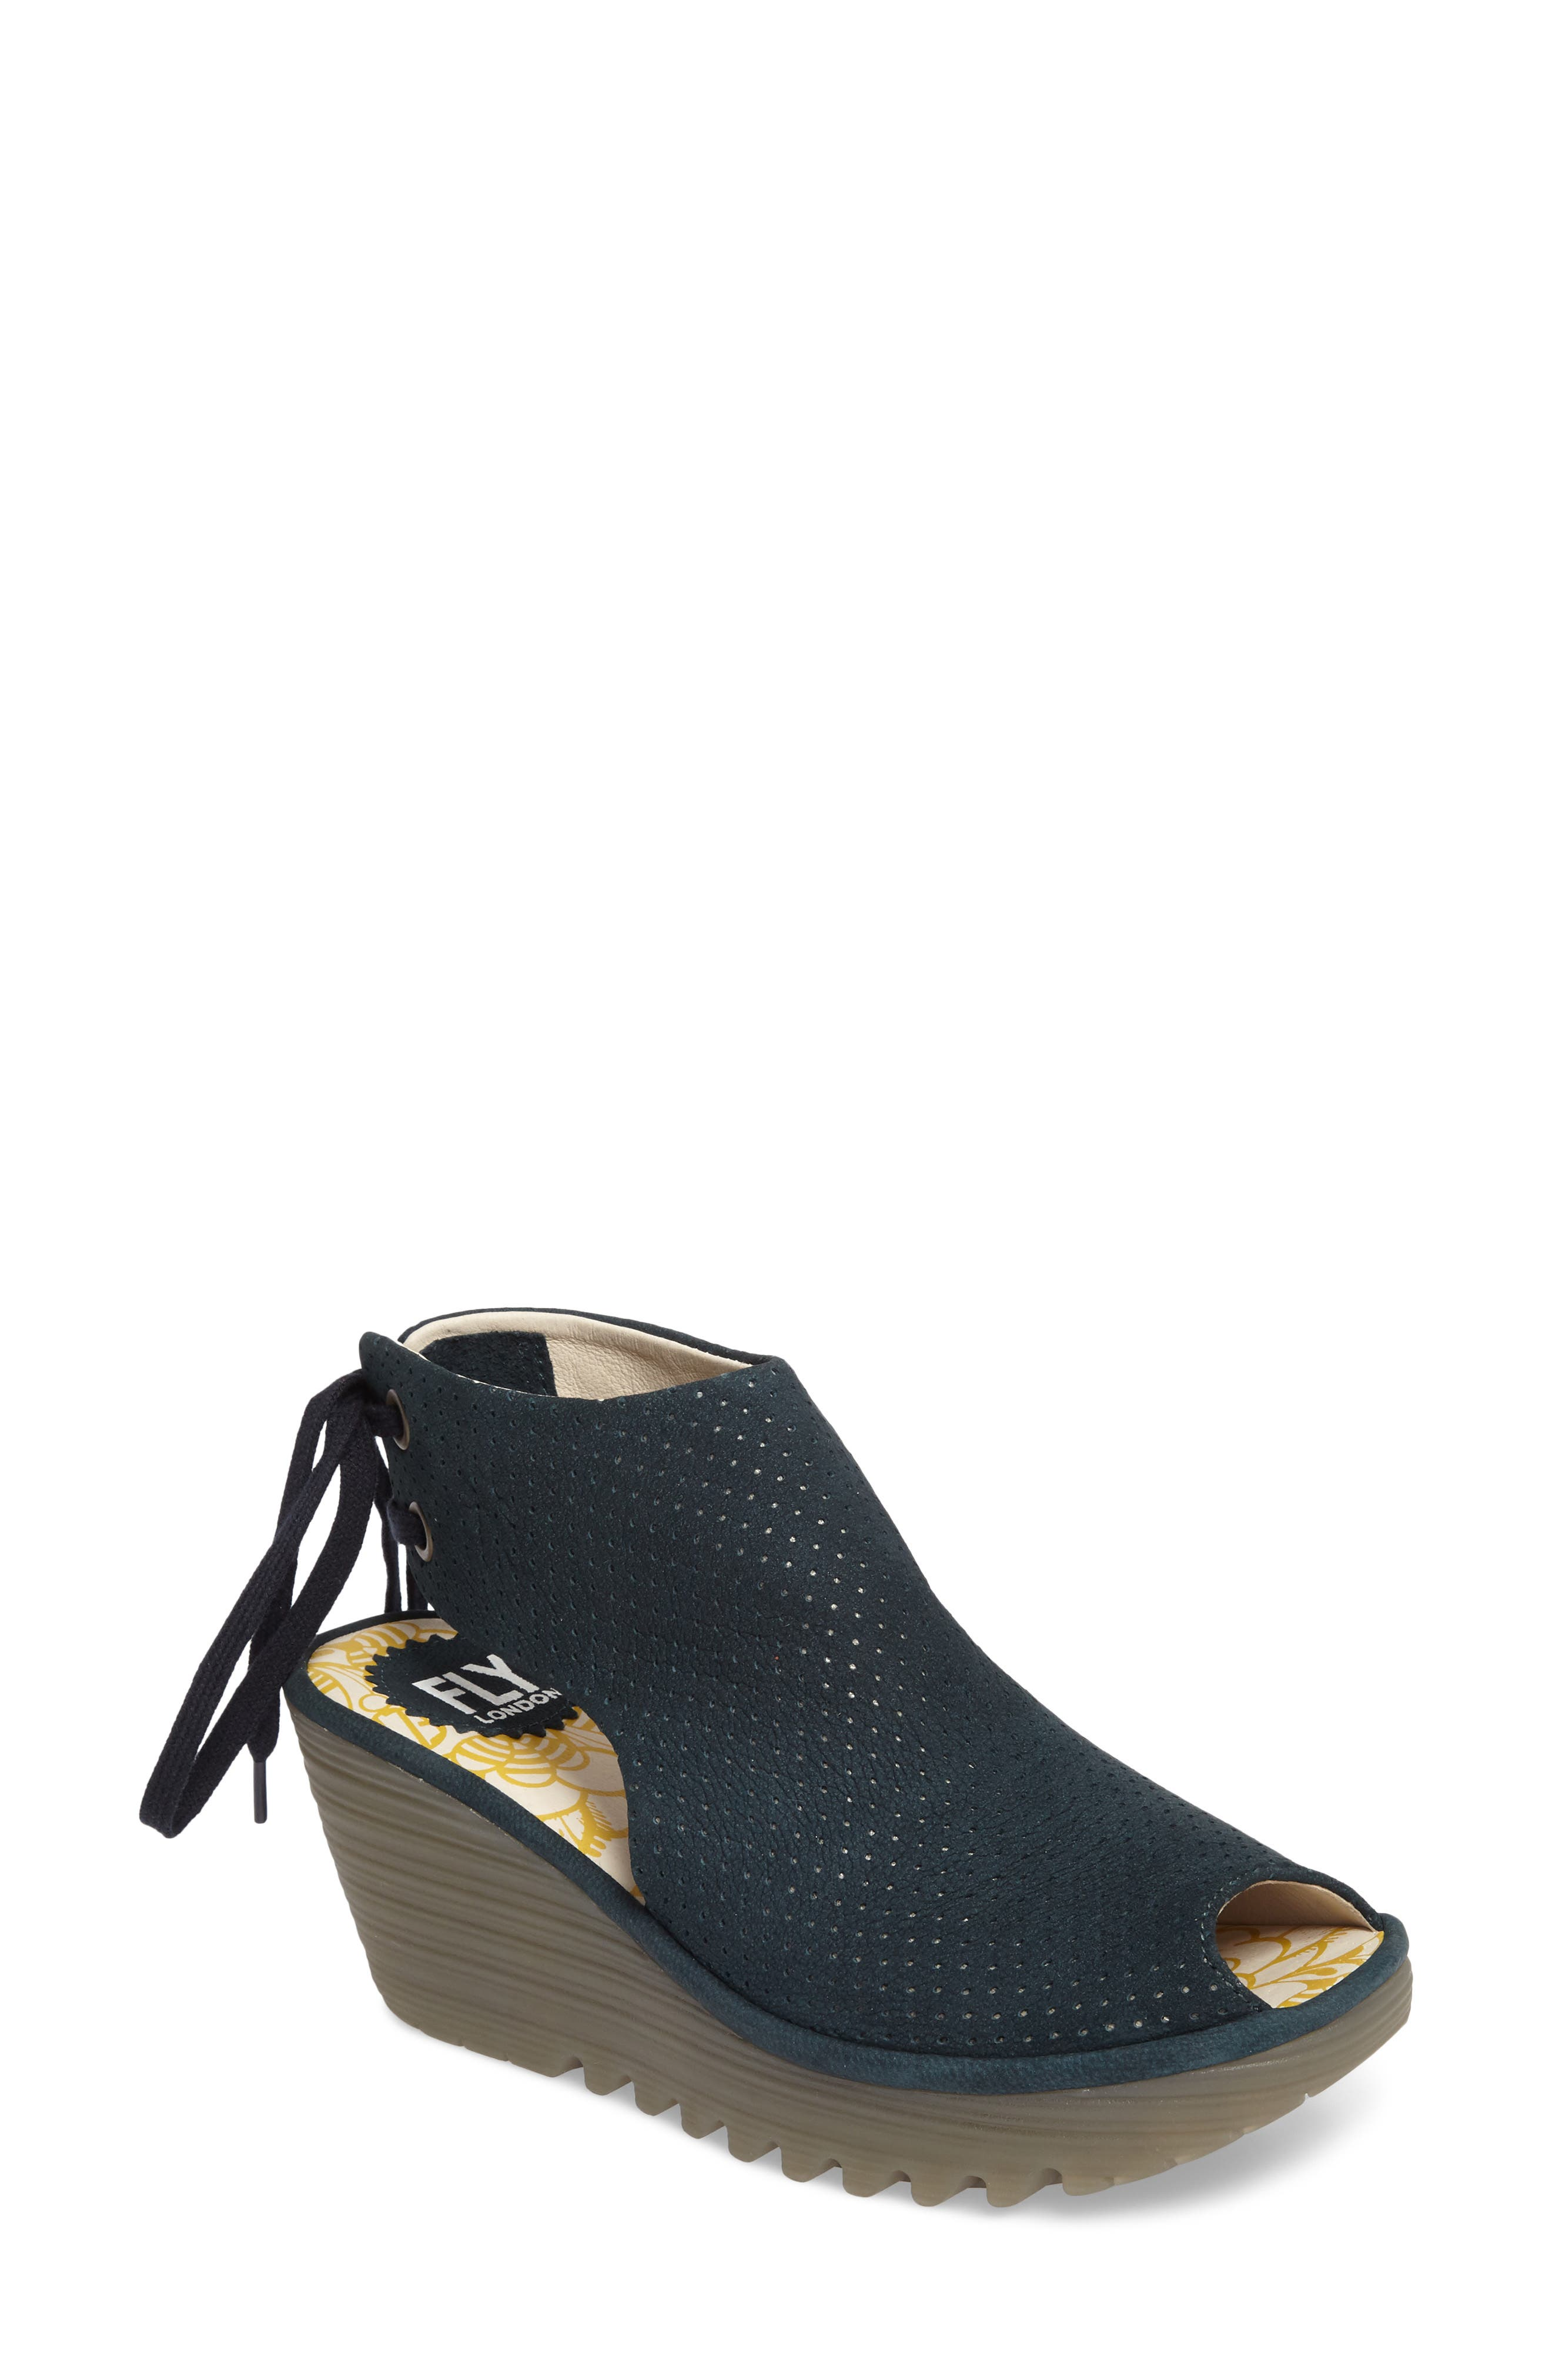 Ypul Wedge Sandal,                             Main thumbnail 1, color,                             REEF CUPIDO LEATHER